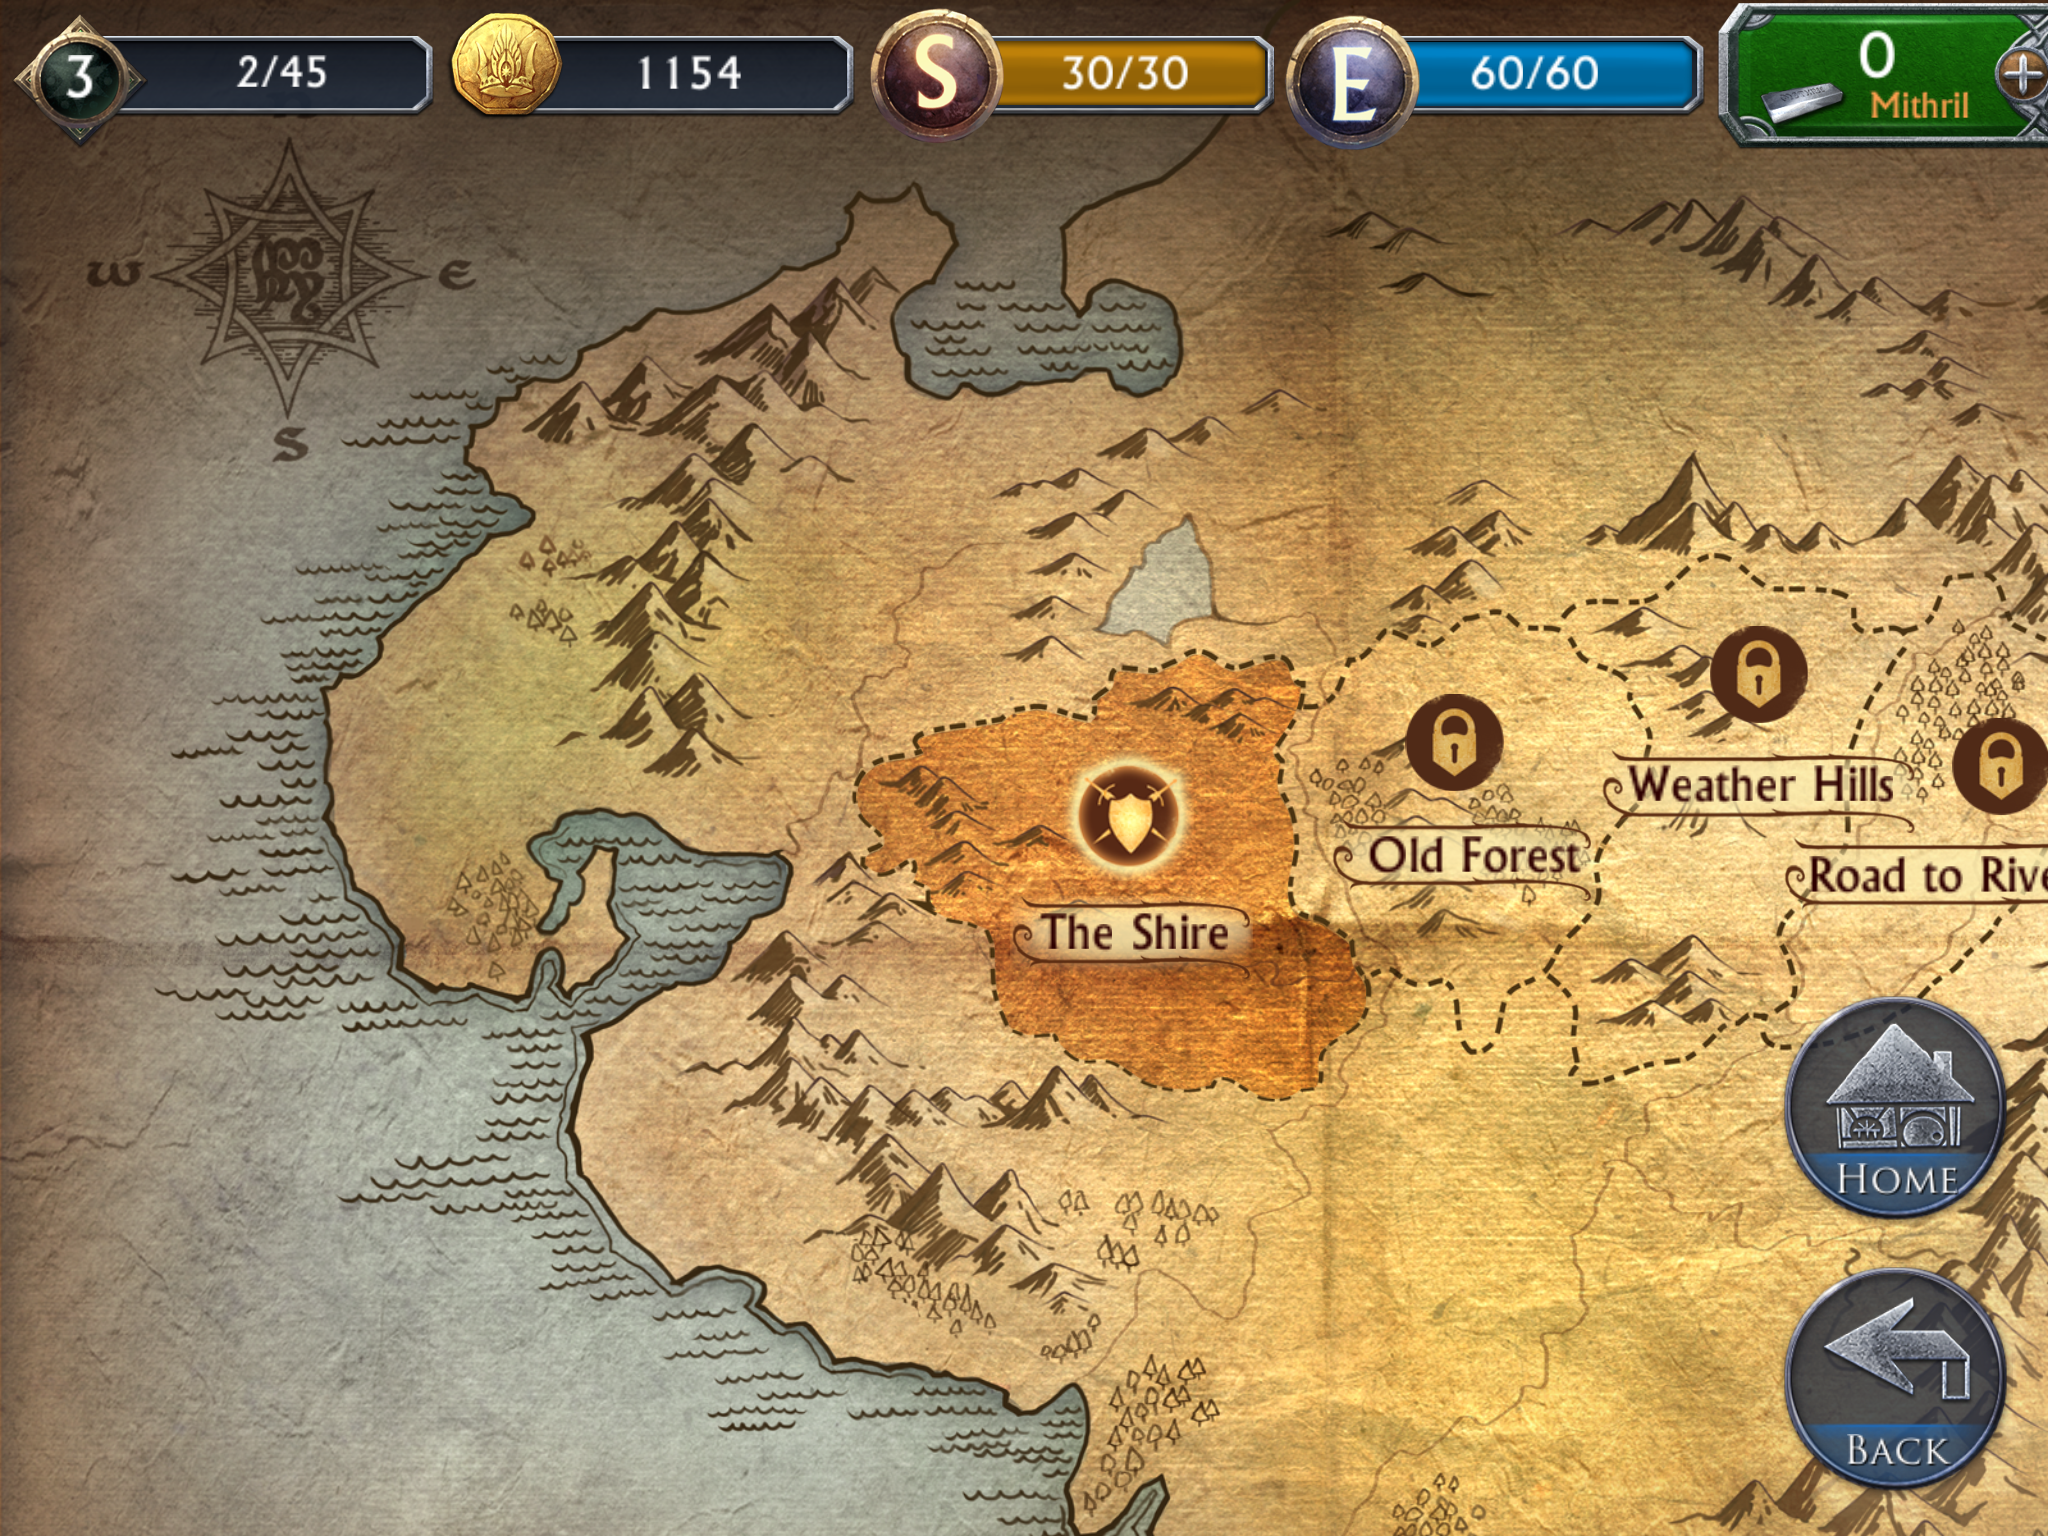 Following Shadow of Mordor Comes a New Lord of the Rings Mobile Game